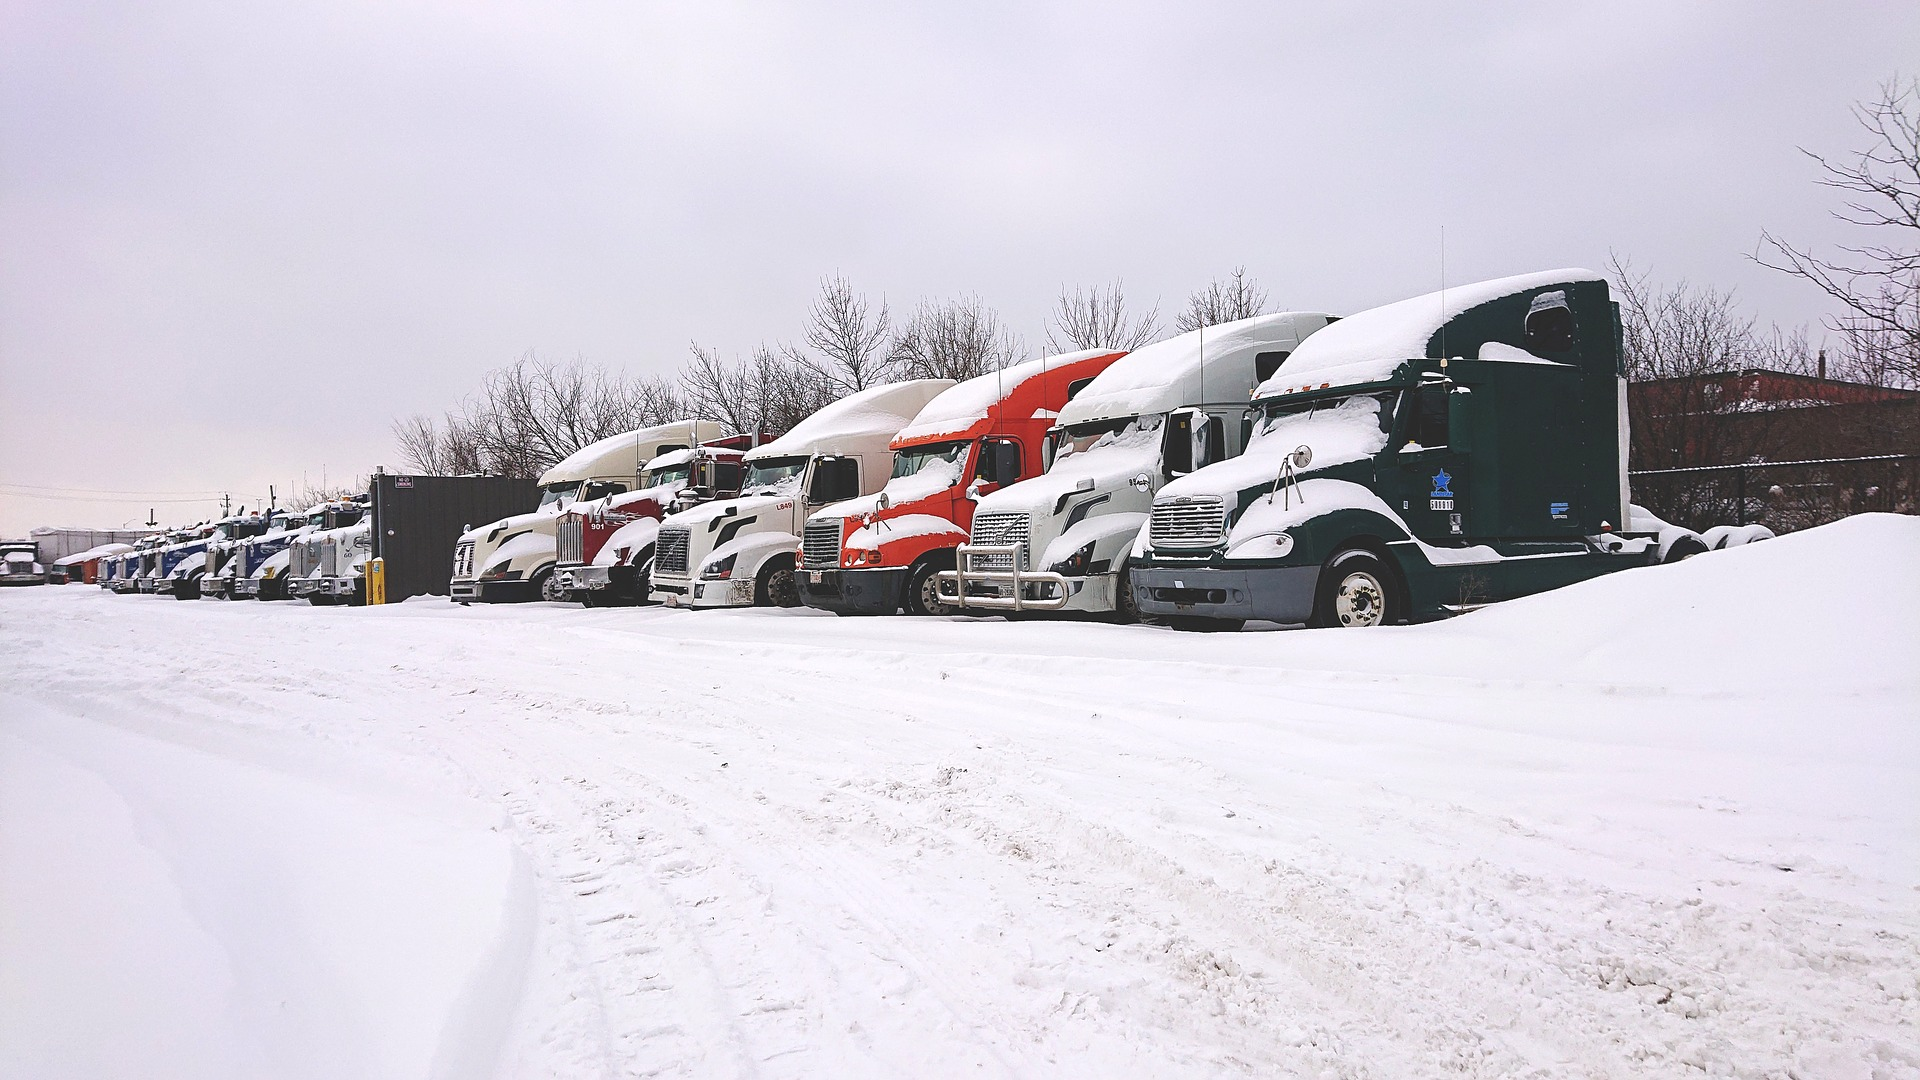 trucks-in-snow-4021311_1920.jpg